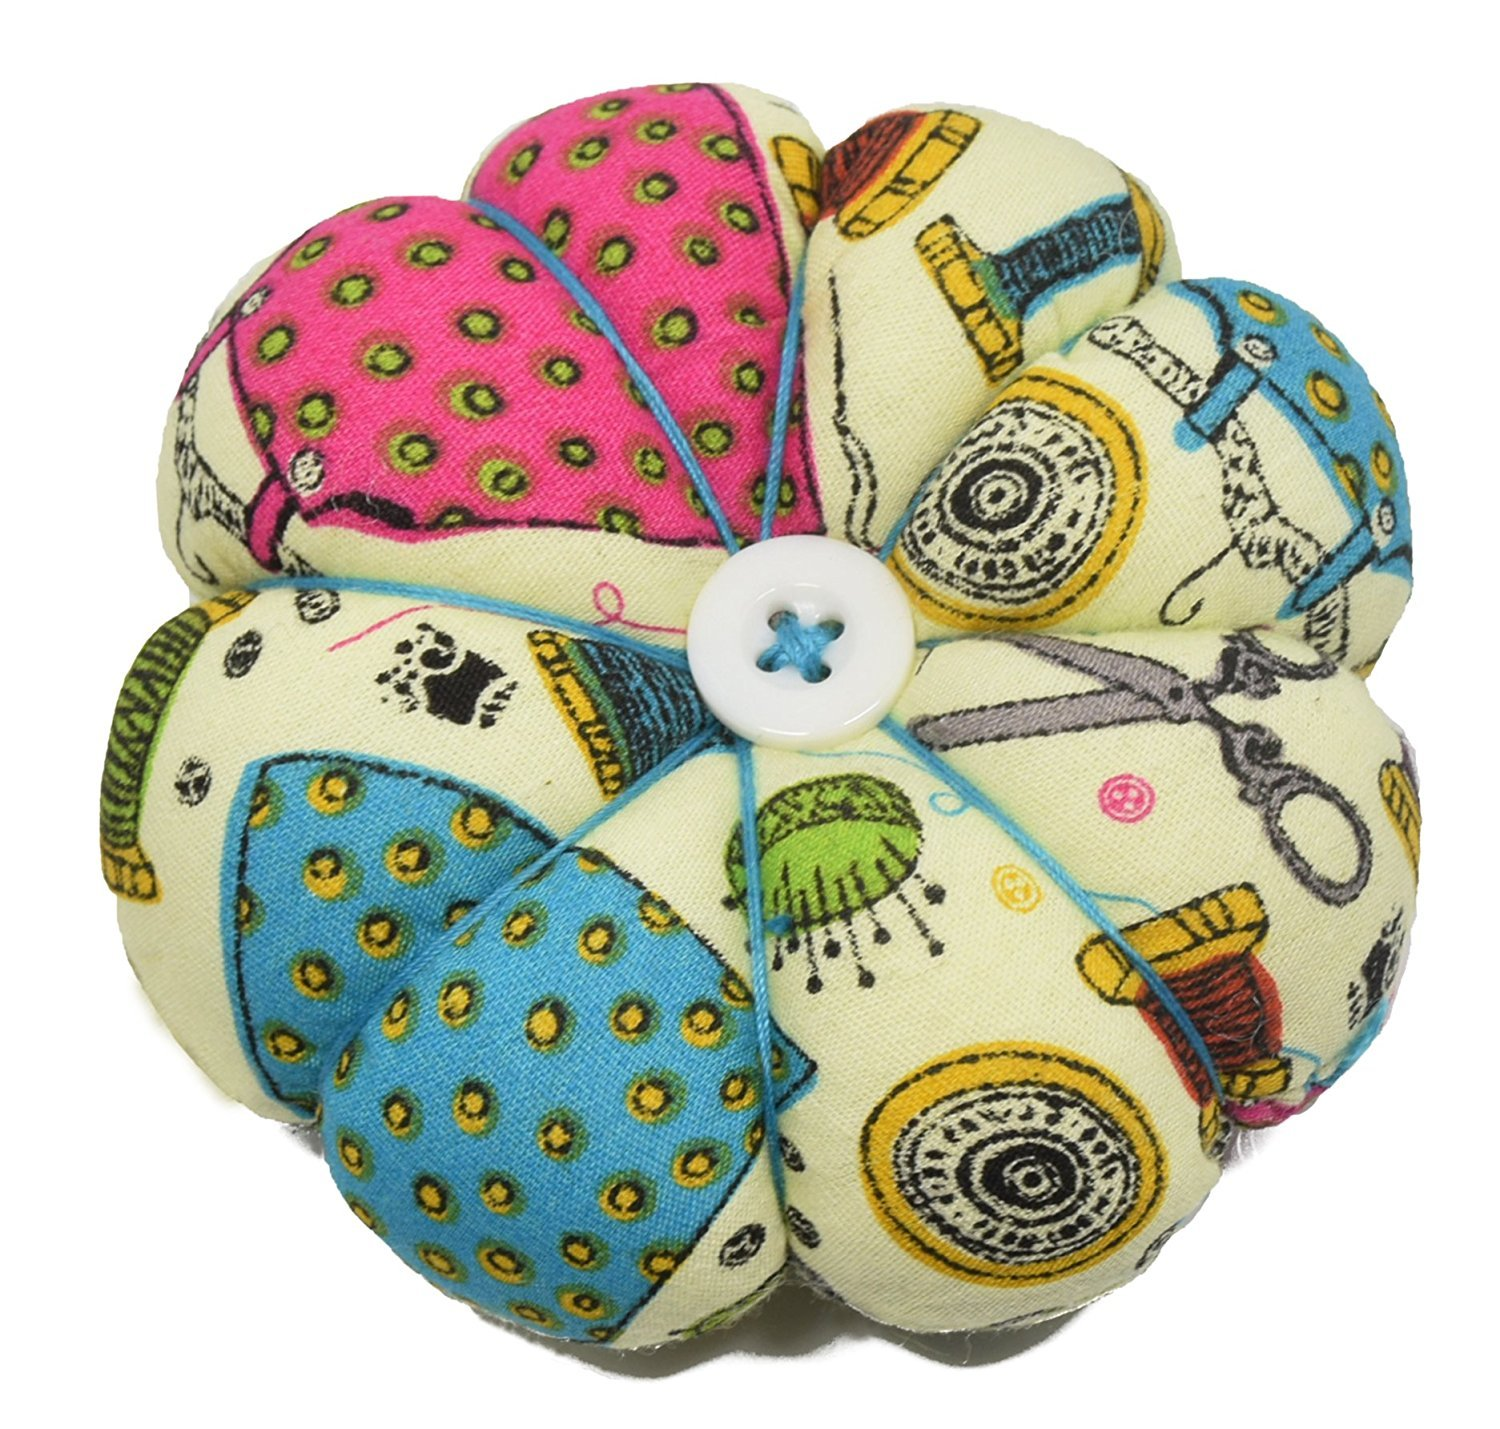 Besplore Pin Cushion Polka Pumpkin Wrist Pin Cushions Wearable Needle Pincushions,Pink